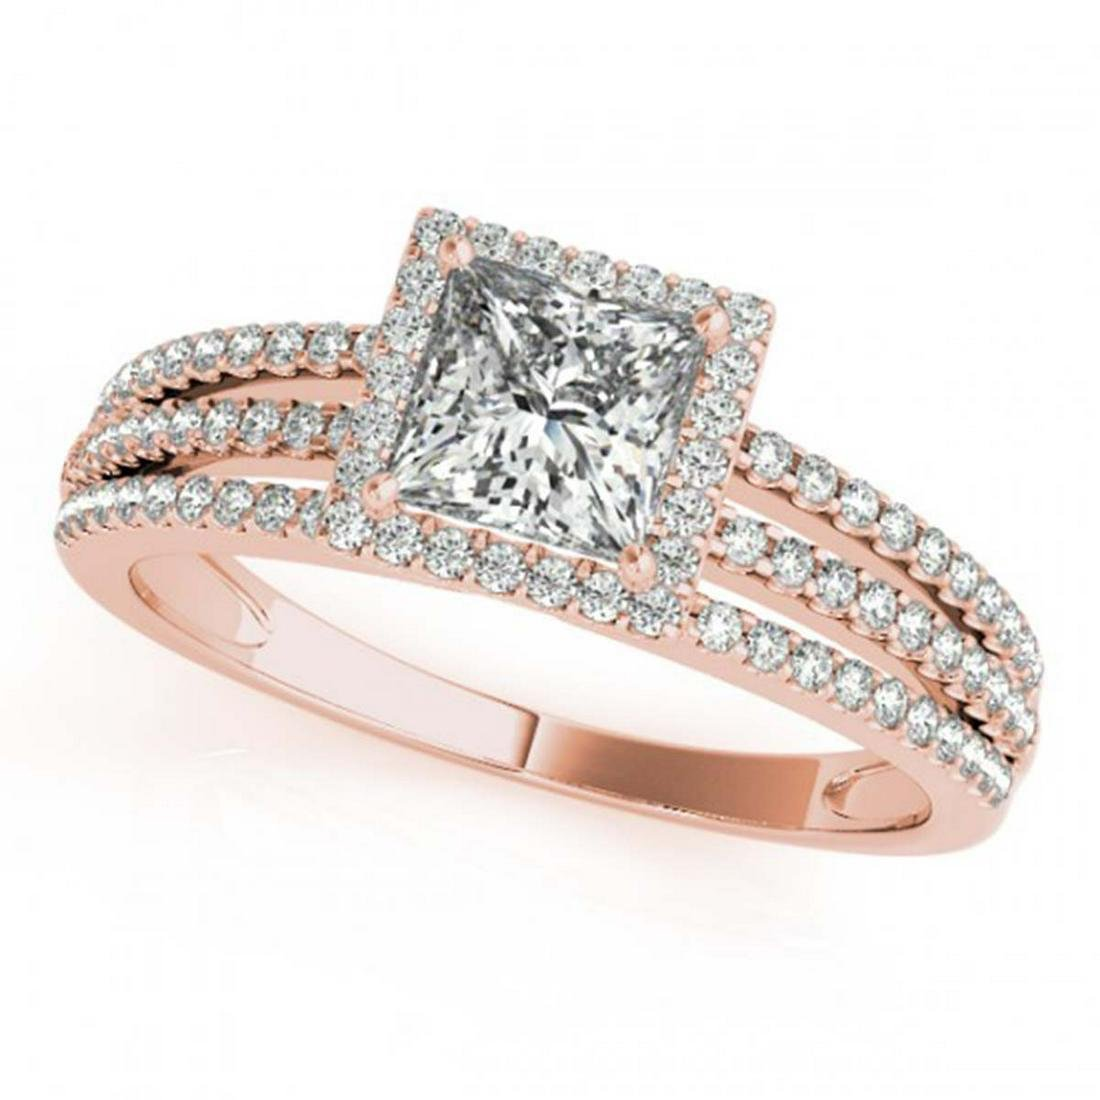 1.20 ctw VS/SI Princess Diamond Halo Ring 18K Rose Gold